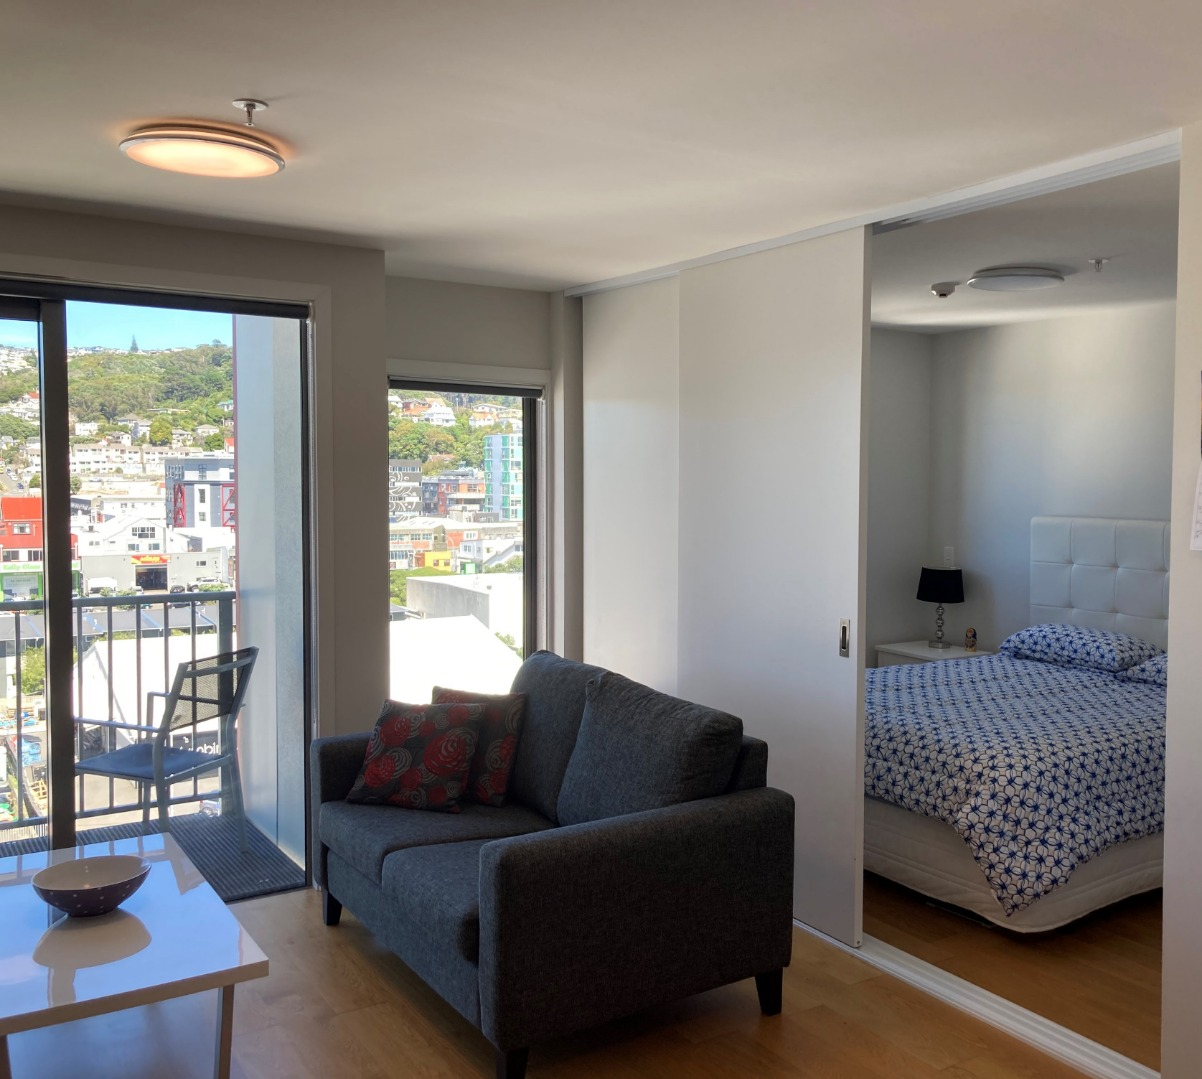 Real Estate For Rent Houses & Apartments : Modern 1 bedroom apartment - Furnished, Wellington